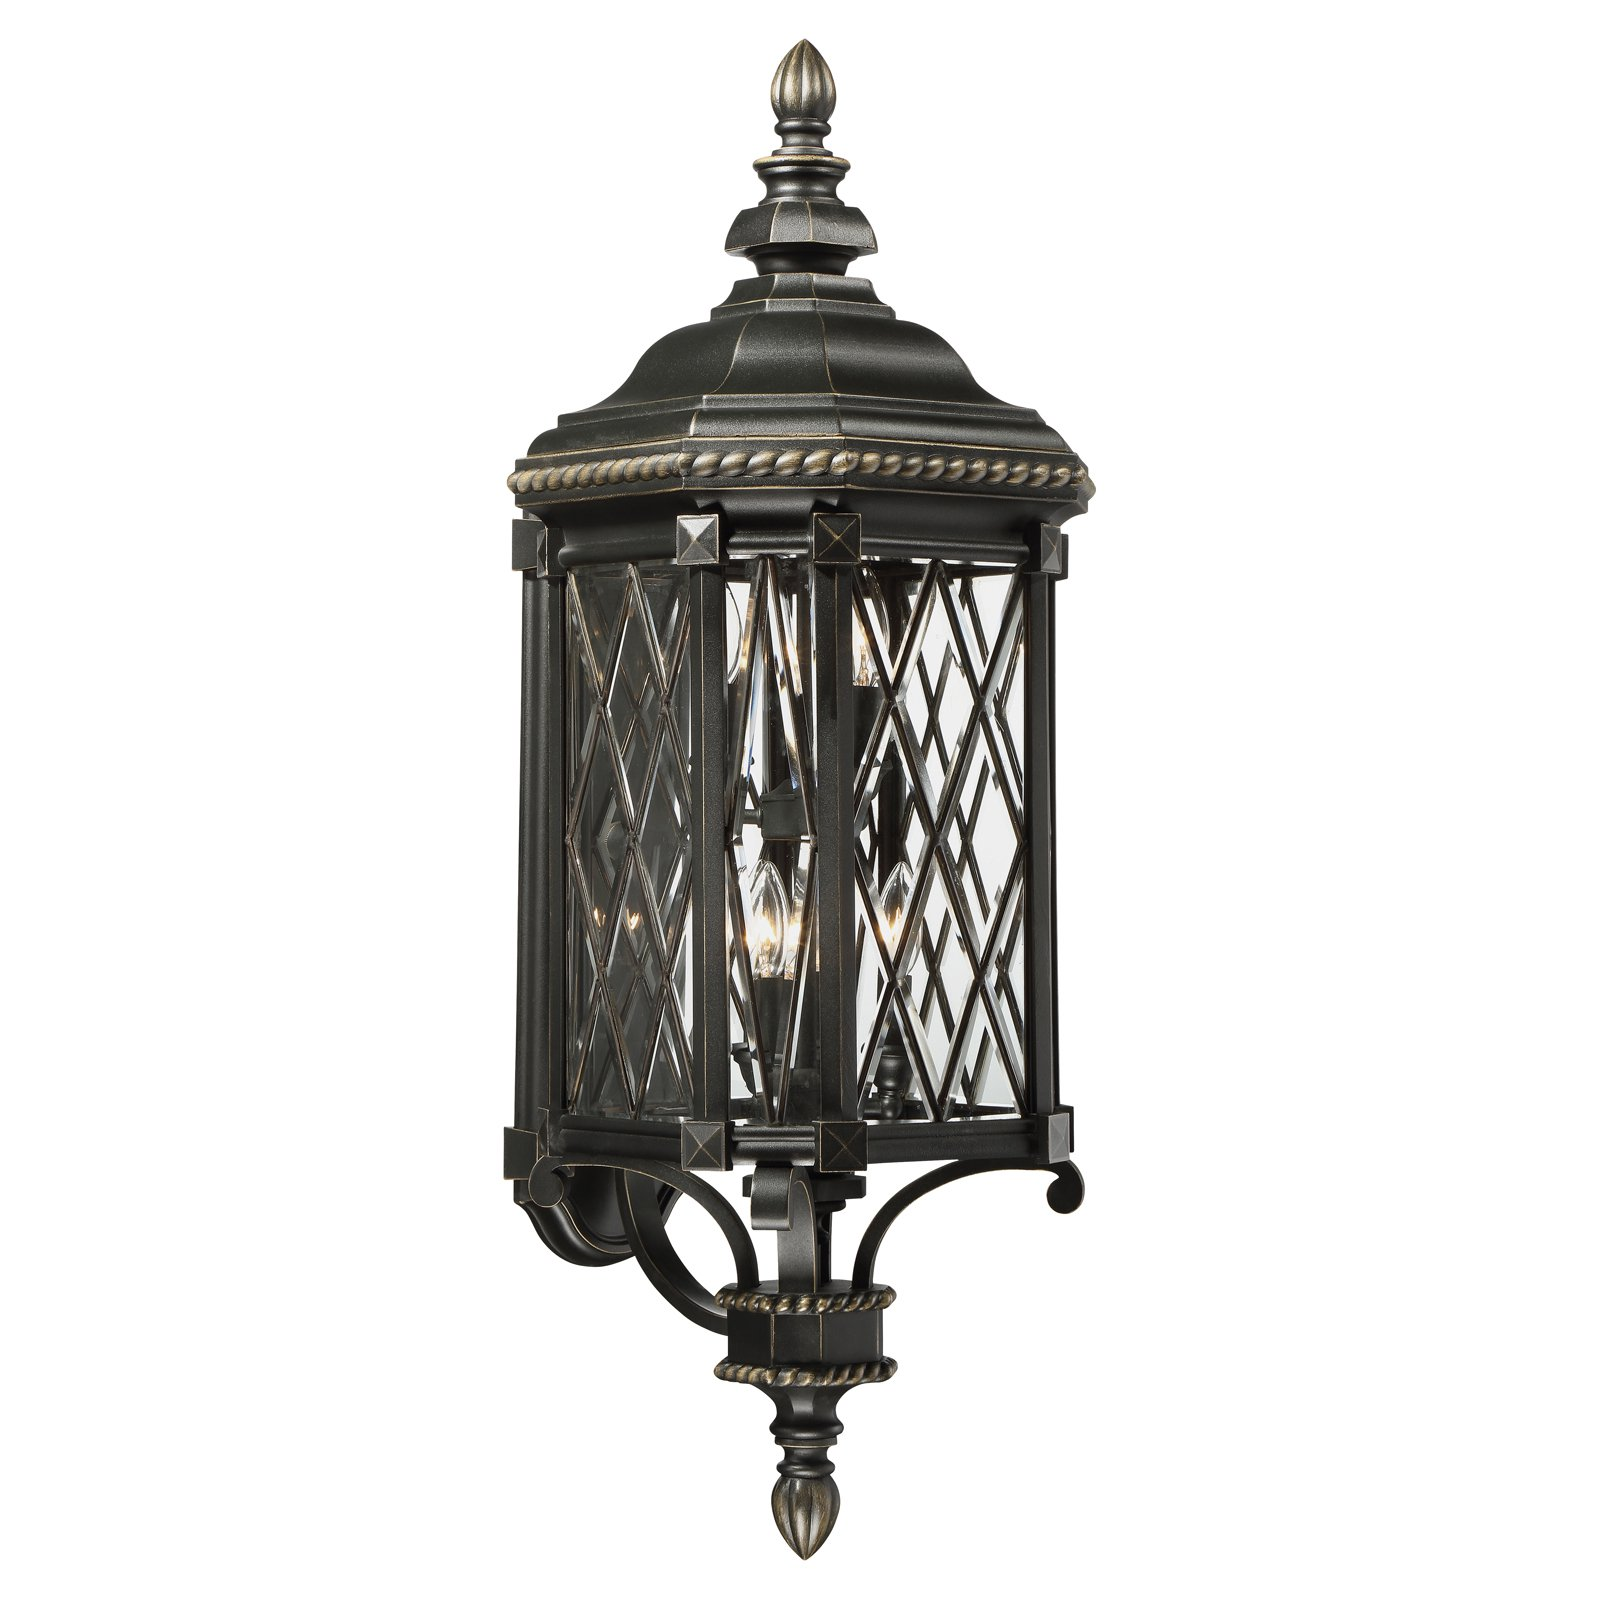 Minka Lavery Bexley Manor 9323-585 Outdoor Wall Mount Light